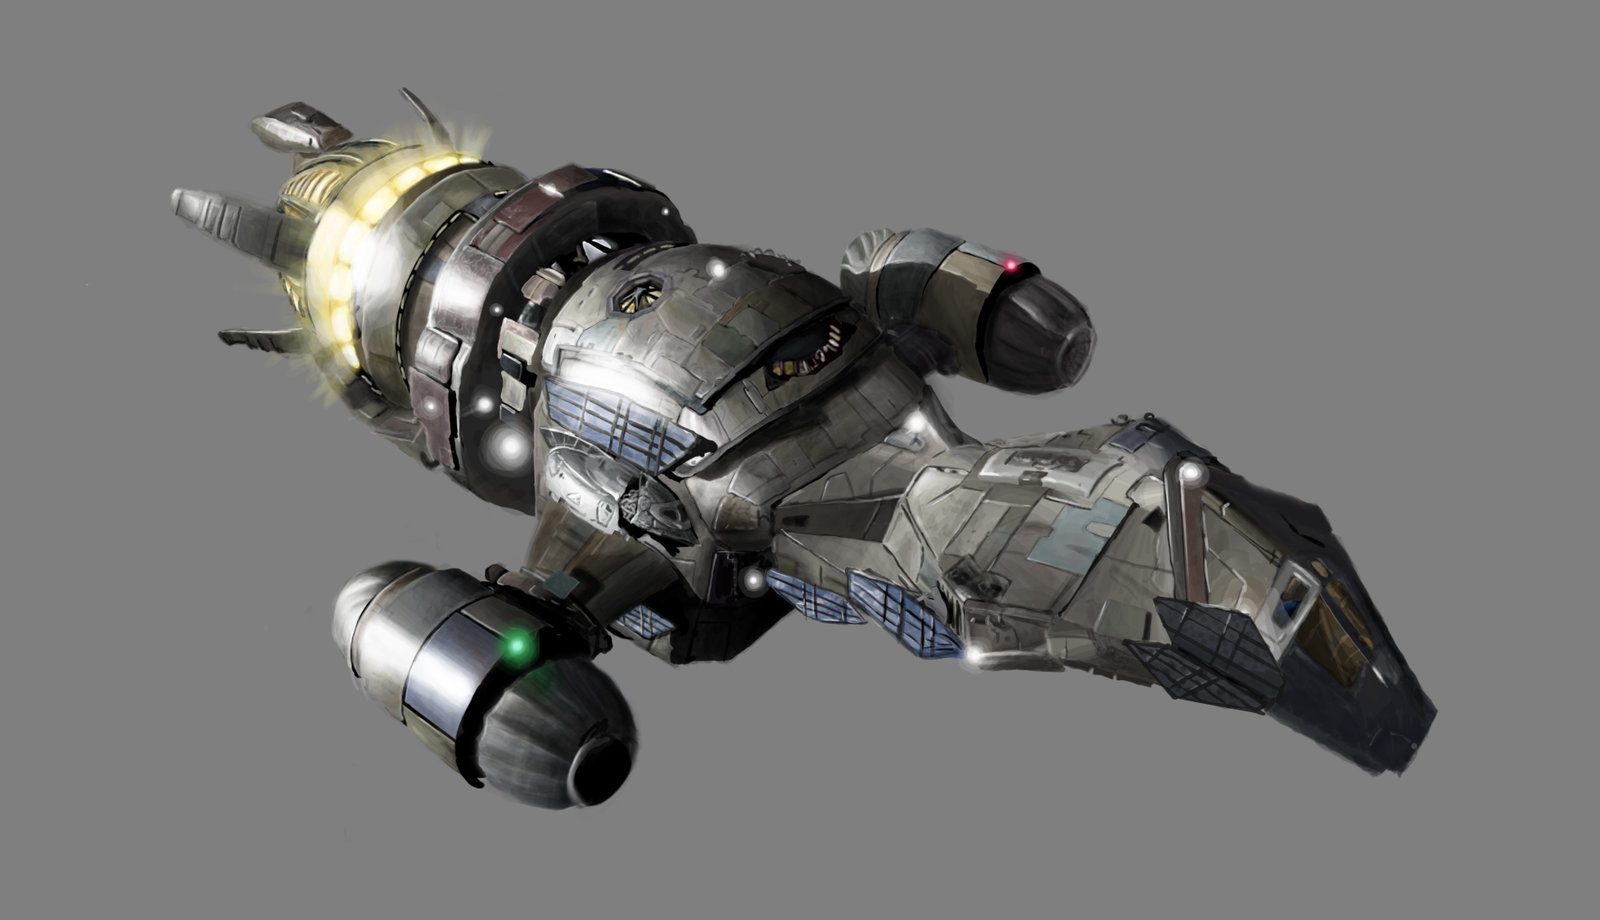 """Spaceships - Firefly class ship """"Serenity"""" / """"Stormbringer"""" 00001"""